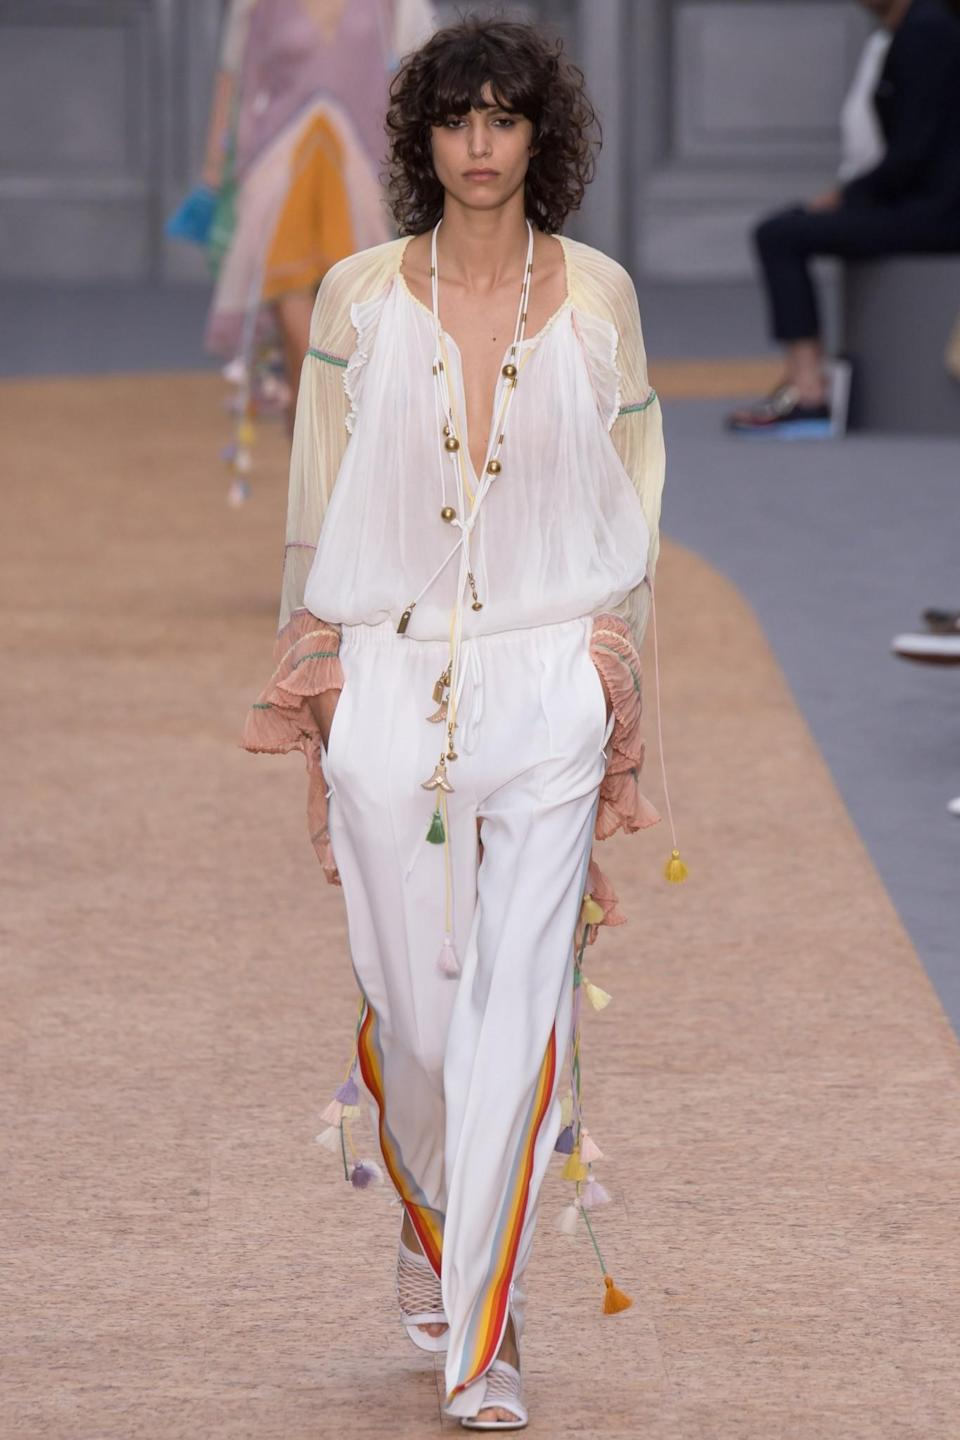 <p>Model Mica Argañaraz looks cool in Chloé's take on sports casual. (Photo: Getty Images) </p>